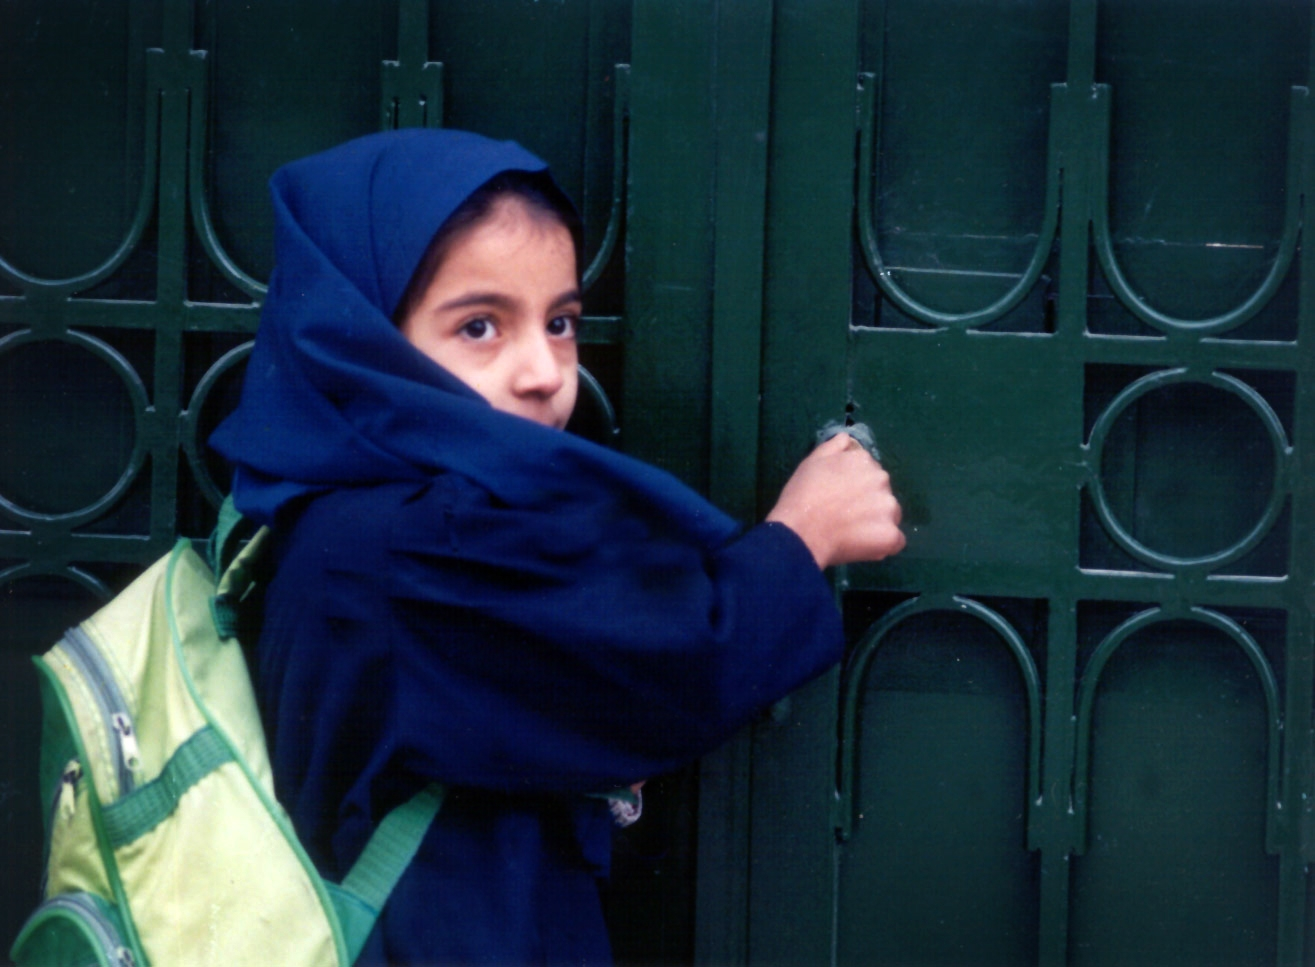 Mohsen Makhmalbafs «A Moment of Innocence».